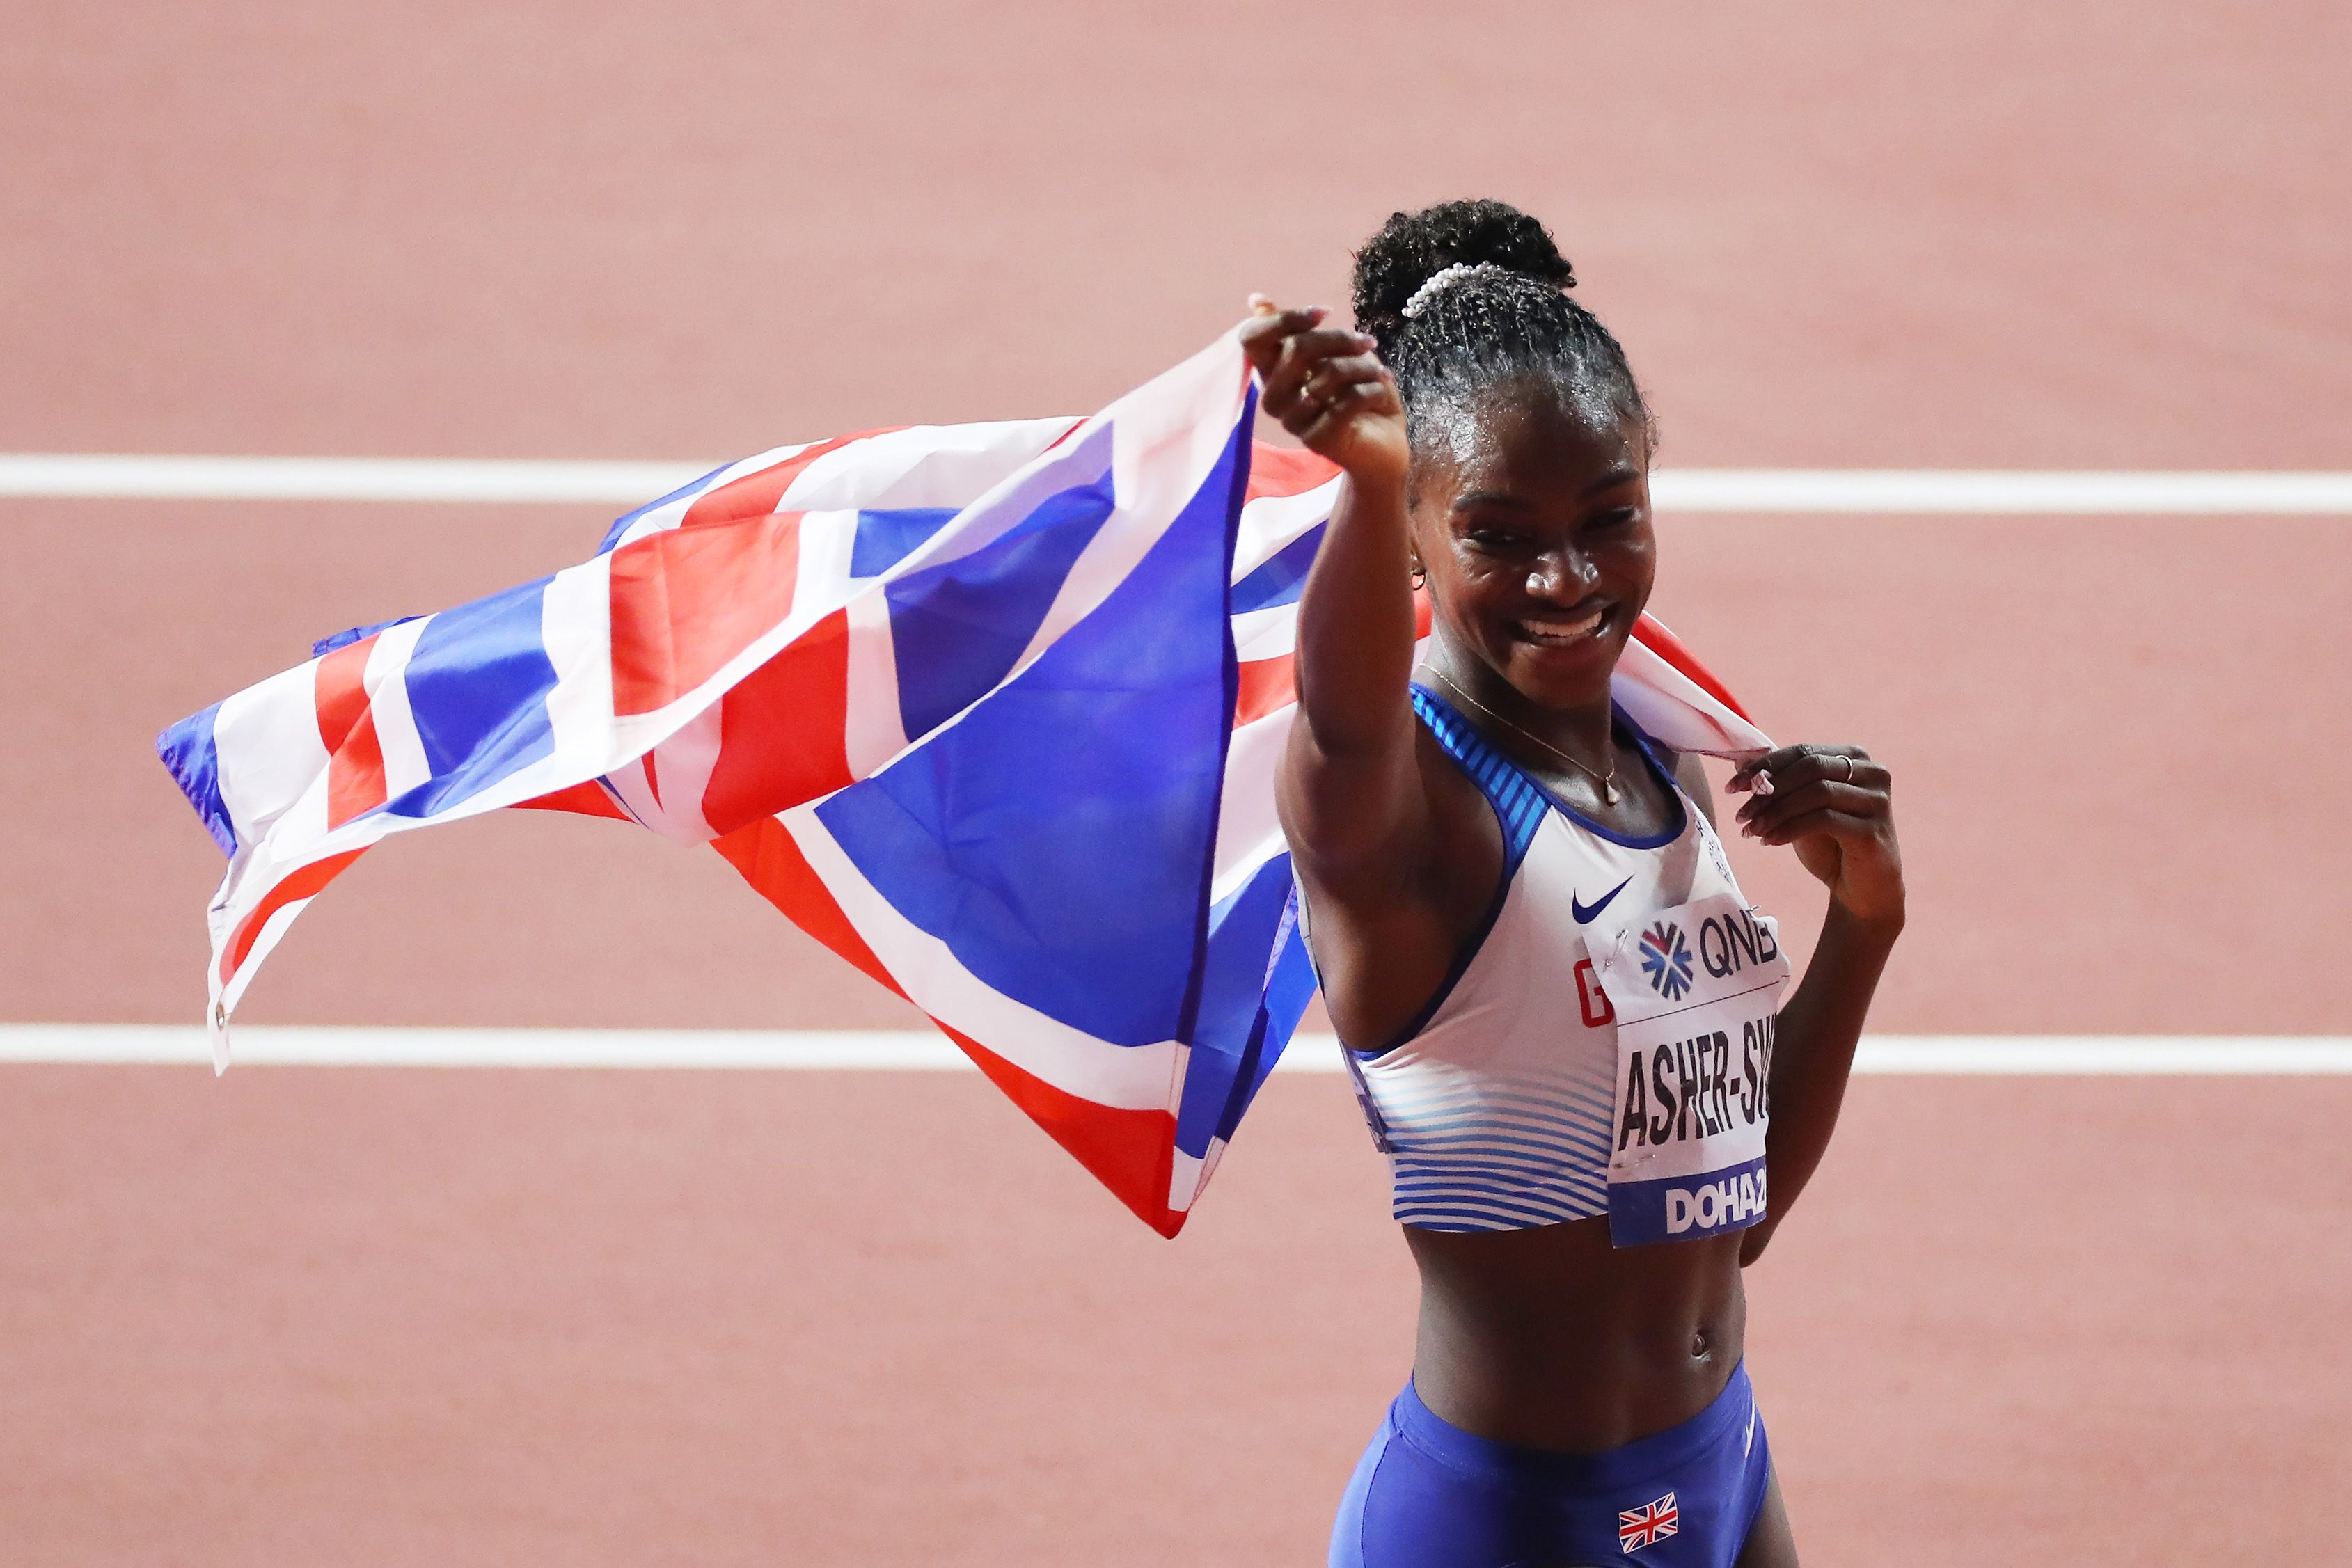 Dina Asher-Smith wins 200m gold at World Athletics Championships